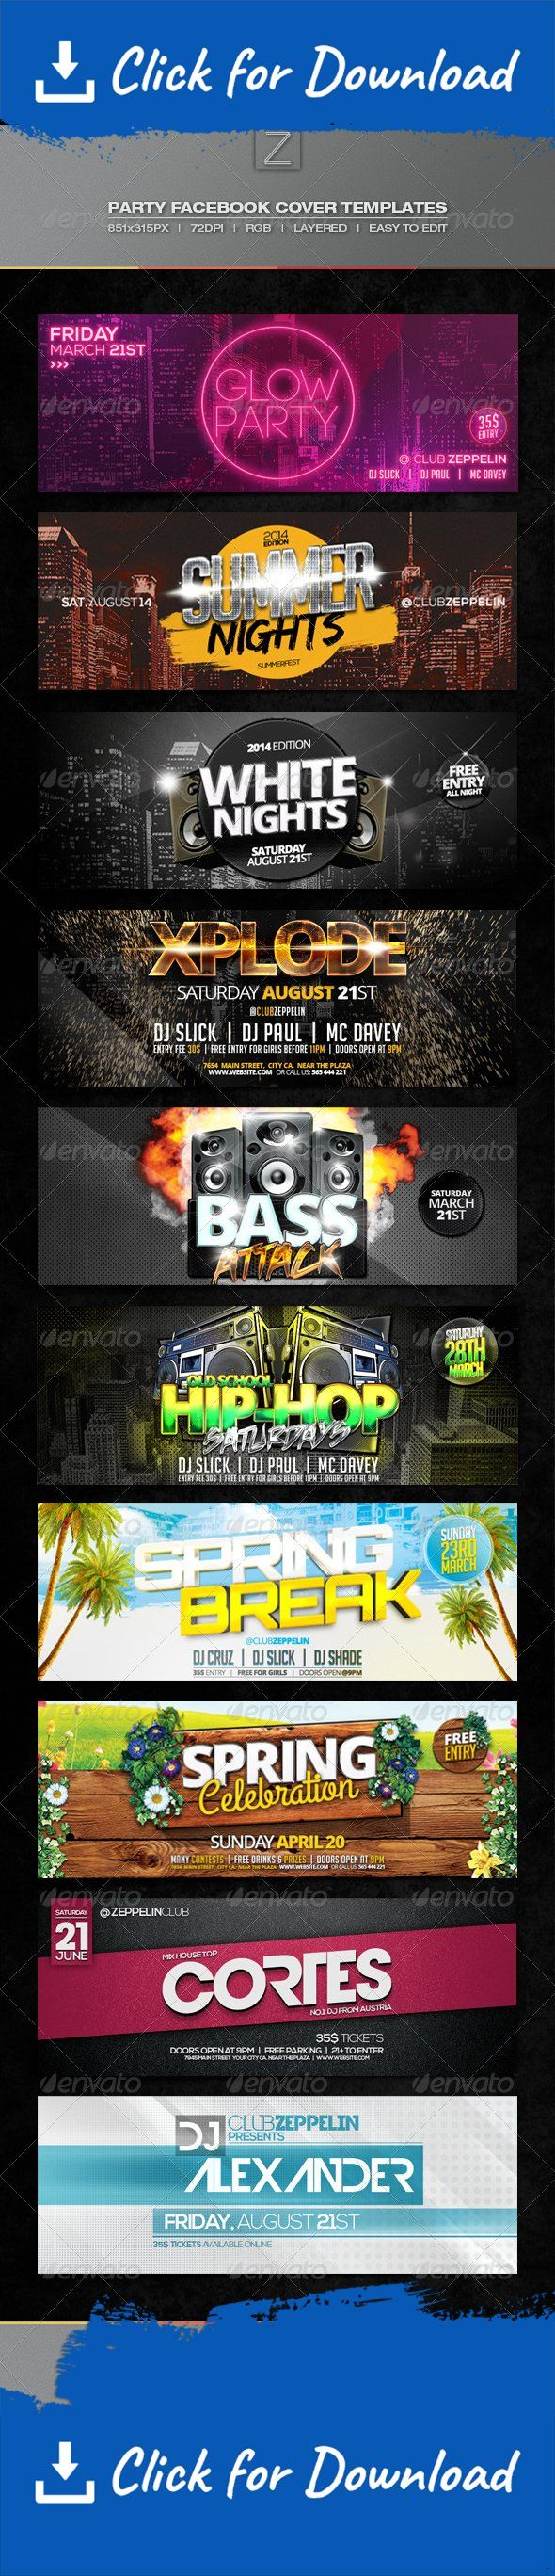 colorful, dj, event, event cover, facebook cover, Facebook timeline, glow party, hip-hop, holiday, music, party, party cover, spring, summer, timeline cover, zeppelin      Party Facebook Cover Templates   All of the facebook covers in this set also have flyer versions which you can find available for purchase in my portfolio.   Features:  PSD Files 10 Covers included Fully layered Well organised and named 72dpi RGB 851×315px Editable text  All text is editable. Free fonts used. Link...